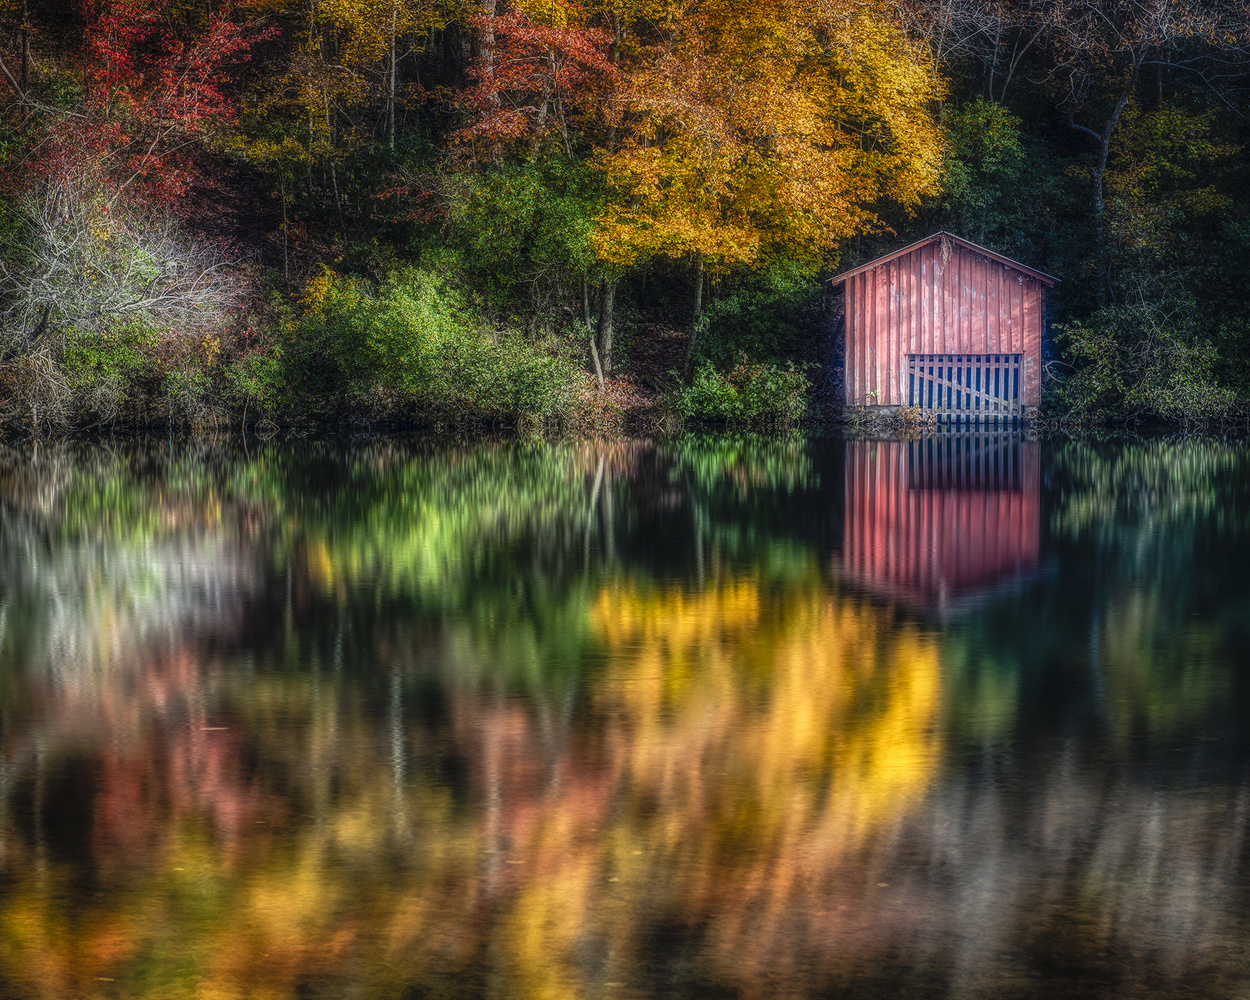 DeSoto Falls Boathouse by Mark Peavy